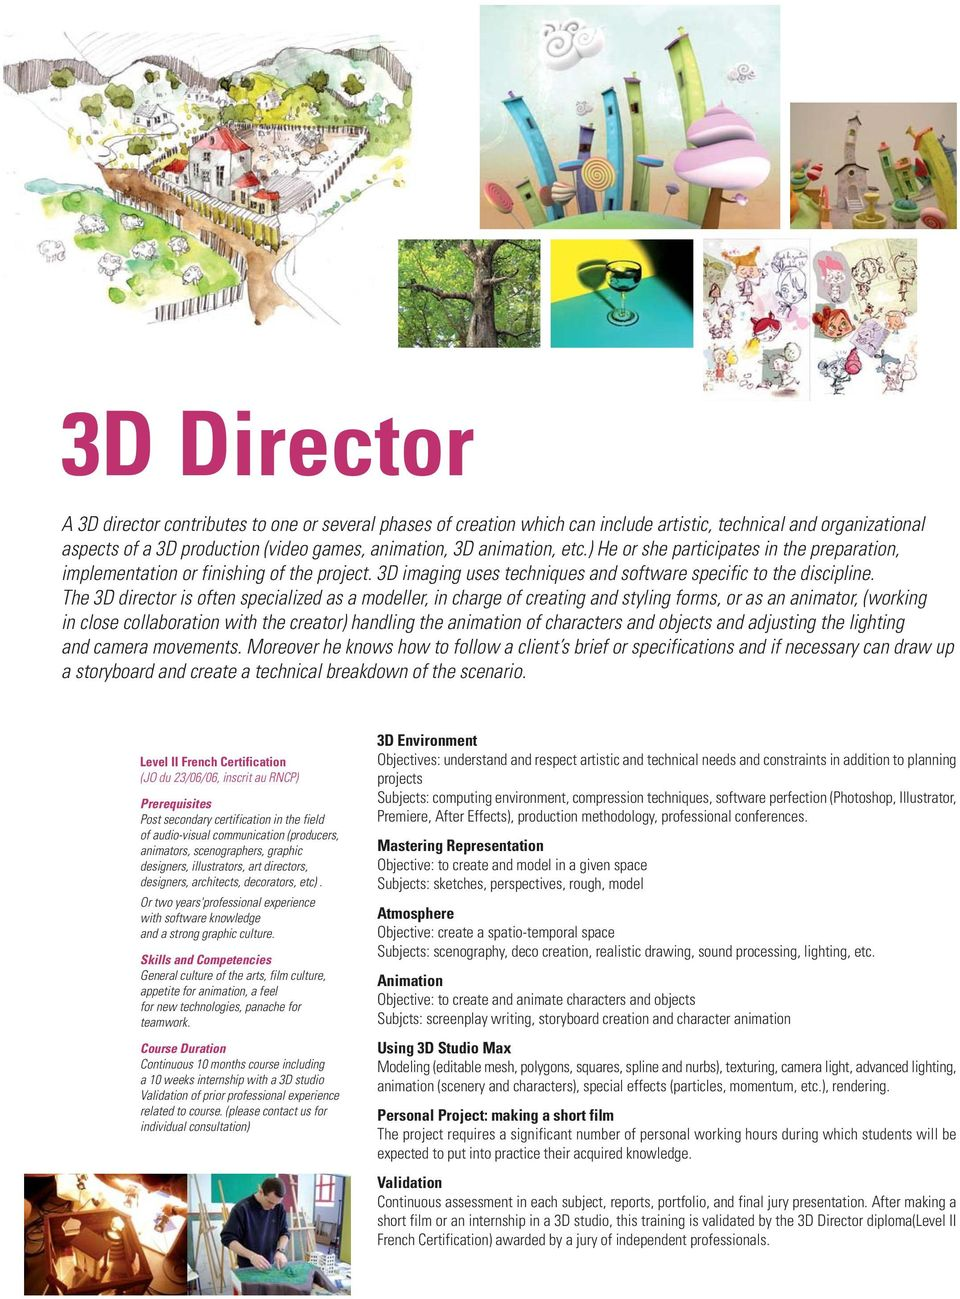 The 3D director is often specialized as a modeller, in charge of creating and styling forms, or as an animator, (working in close collaboration with the creator) handling the animation of characters